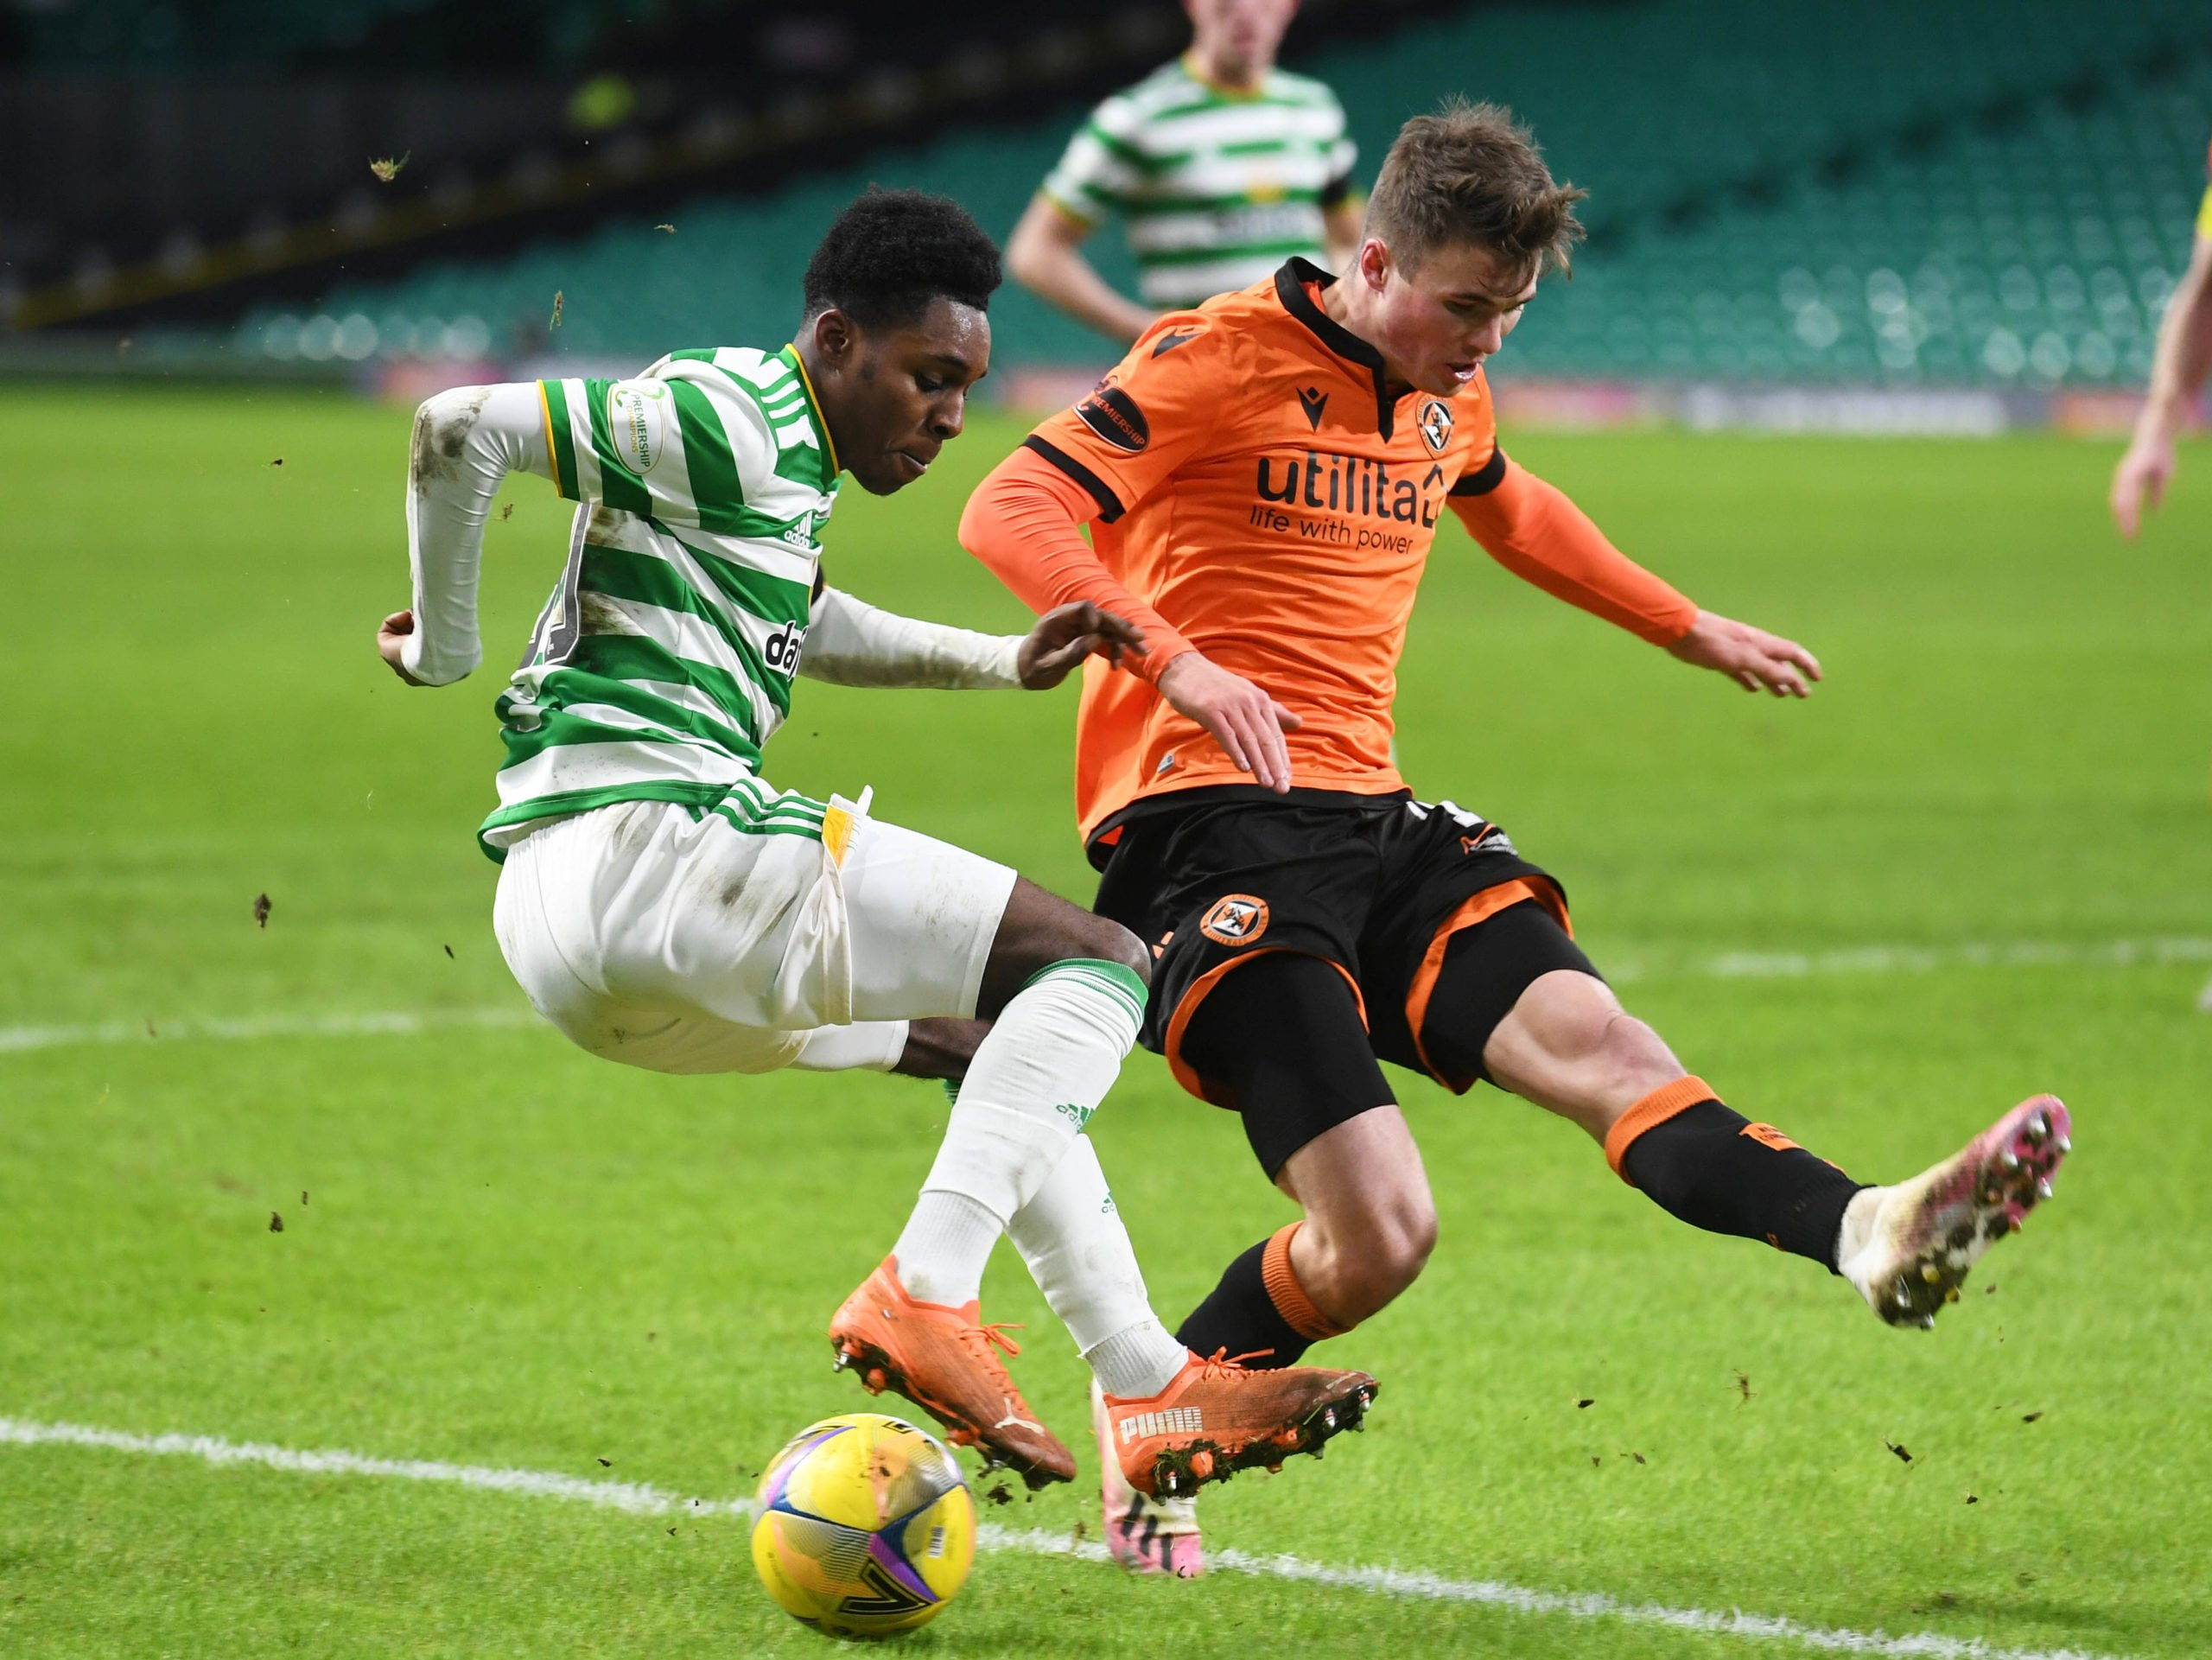 Celtic star Jeremie Frimpong against Dundee United